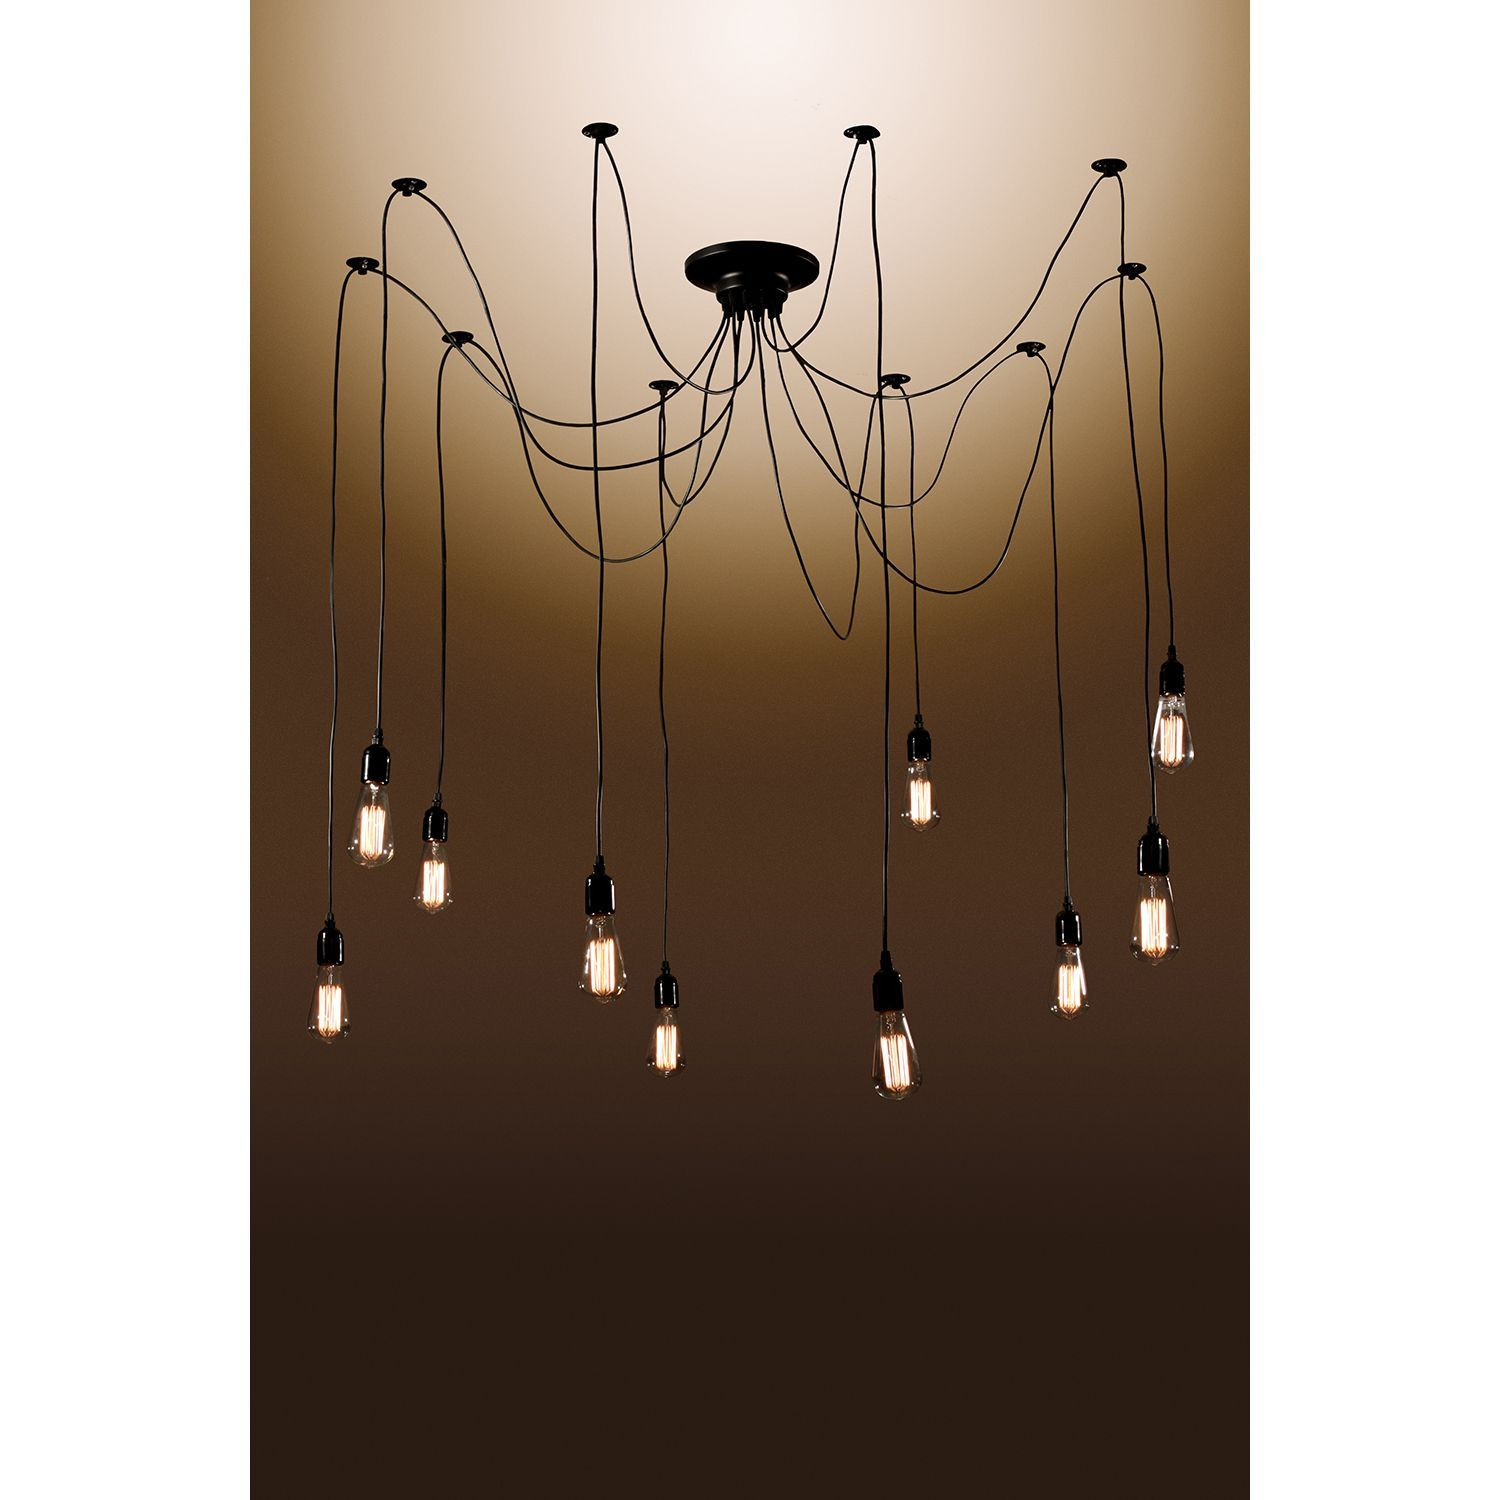 Zendaya 10 bulb Edison Chandelier with Bulbs Warehouse of Tiffany s